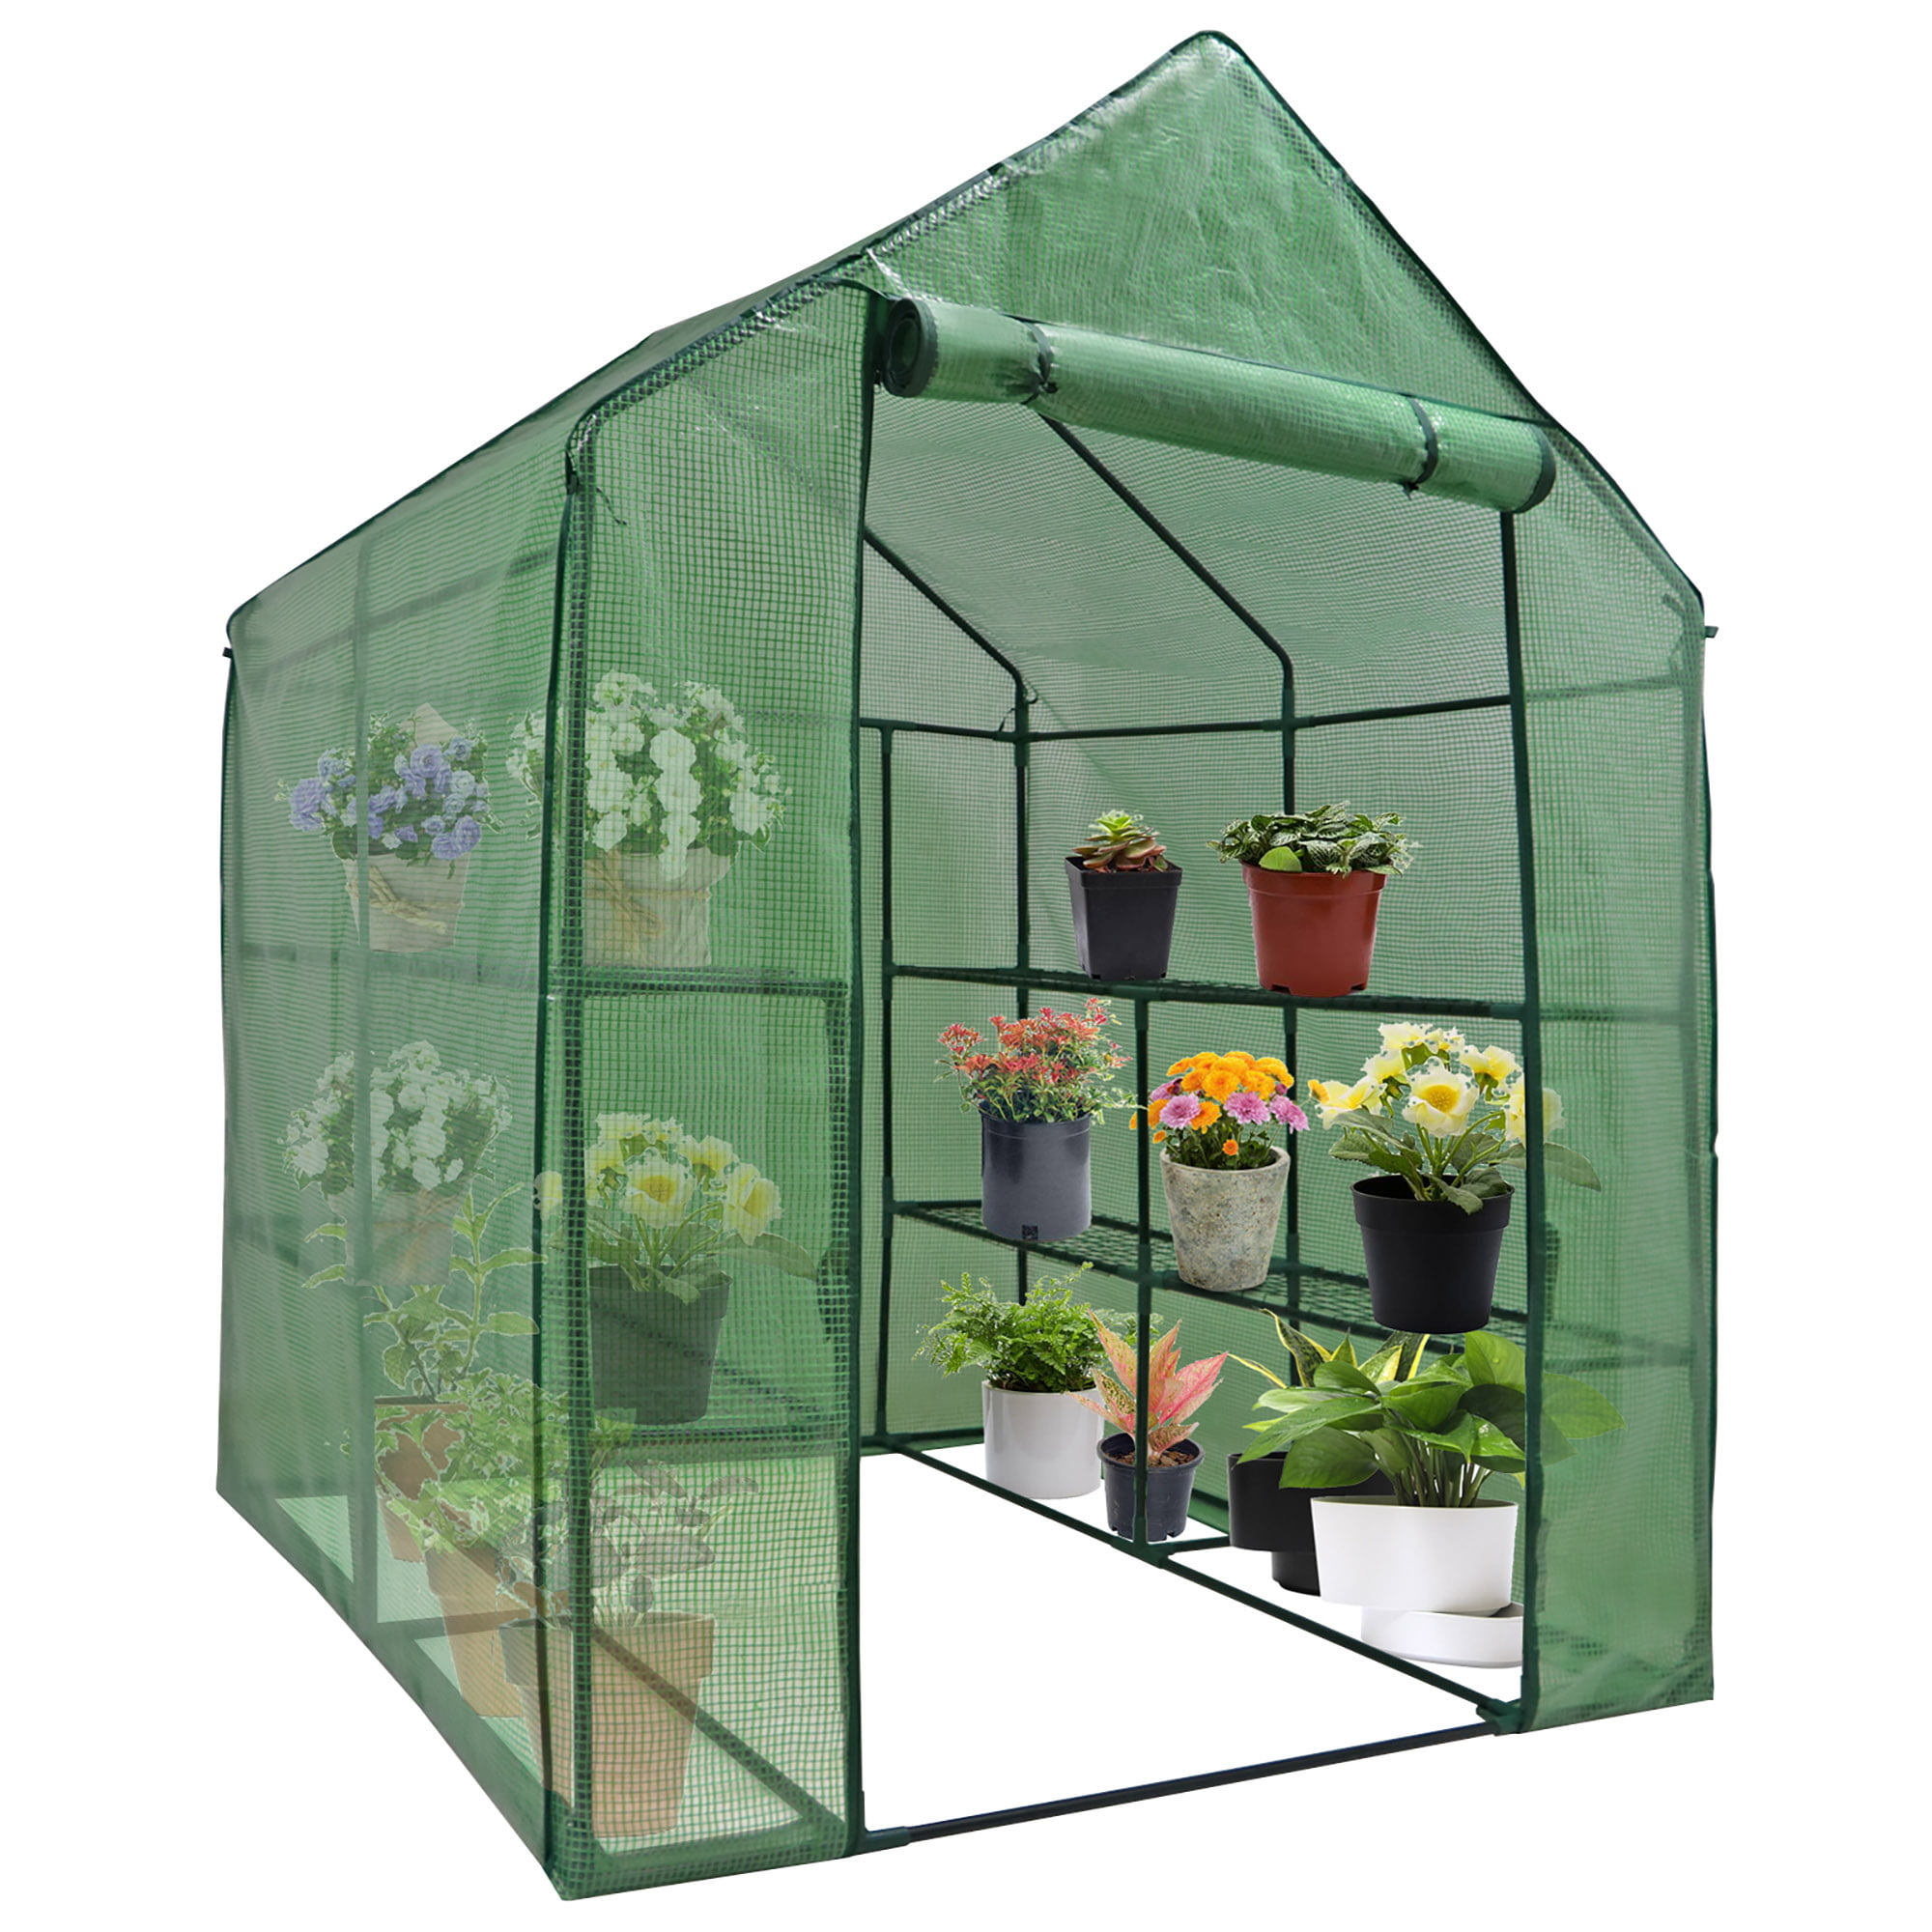 Seedlings Without Shelf Waterproof UV Protected Small Potted Plants Greenhouse Plant Greenhouse Cover for Grow Seeds